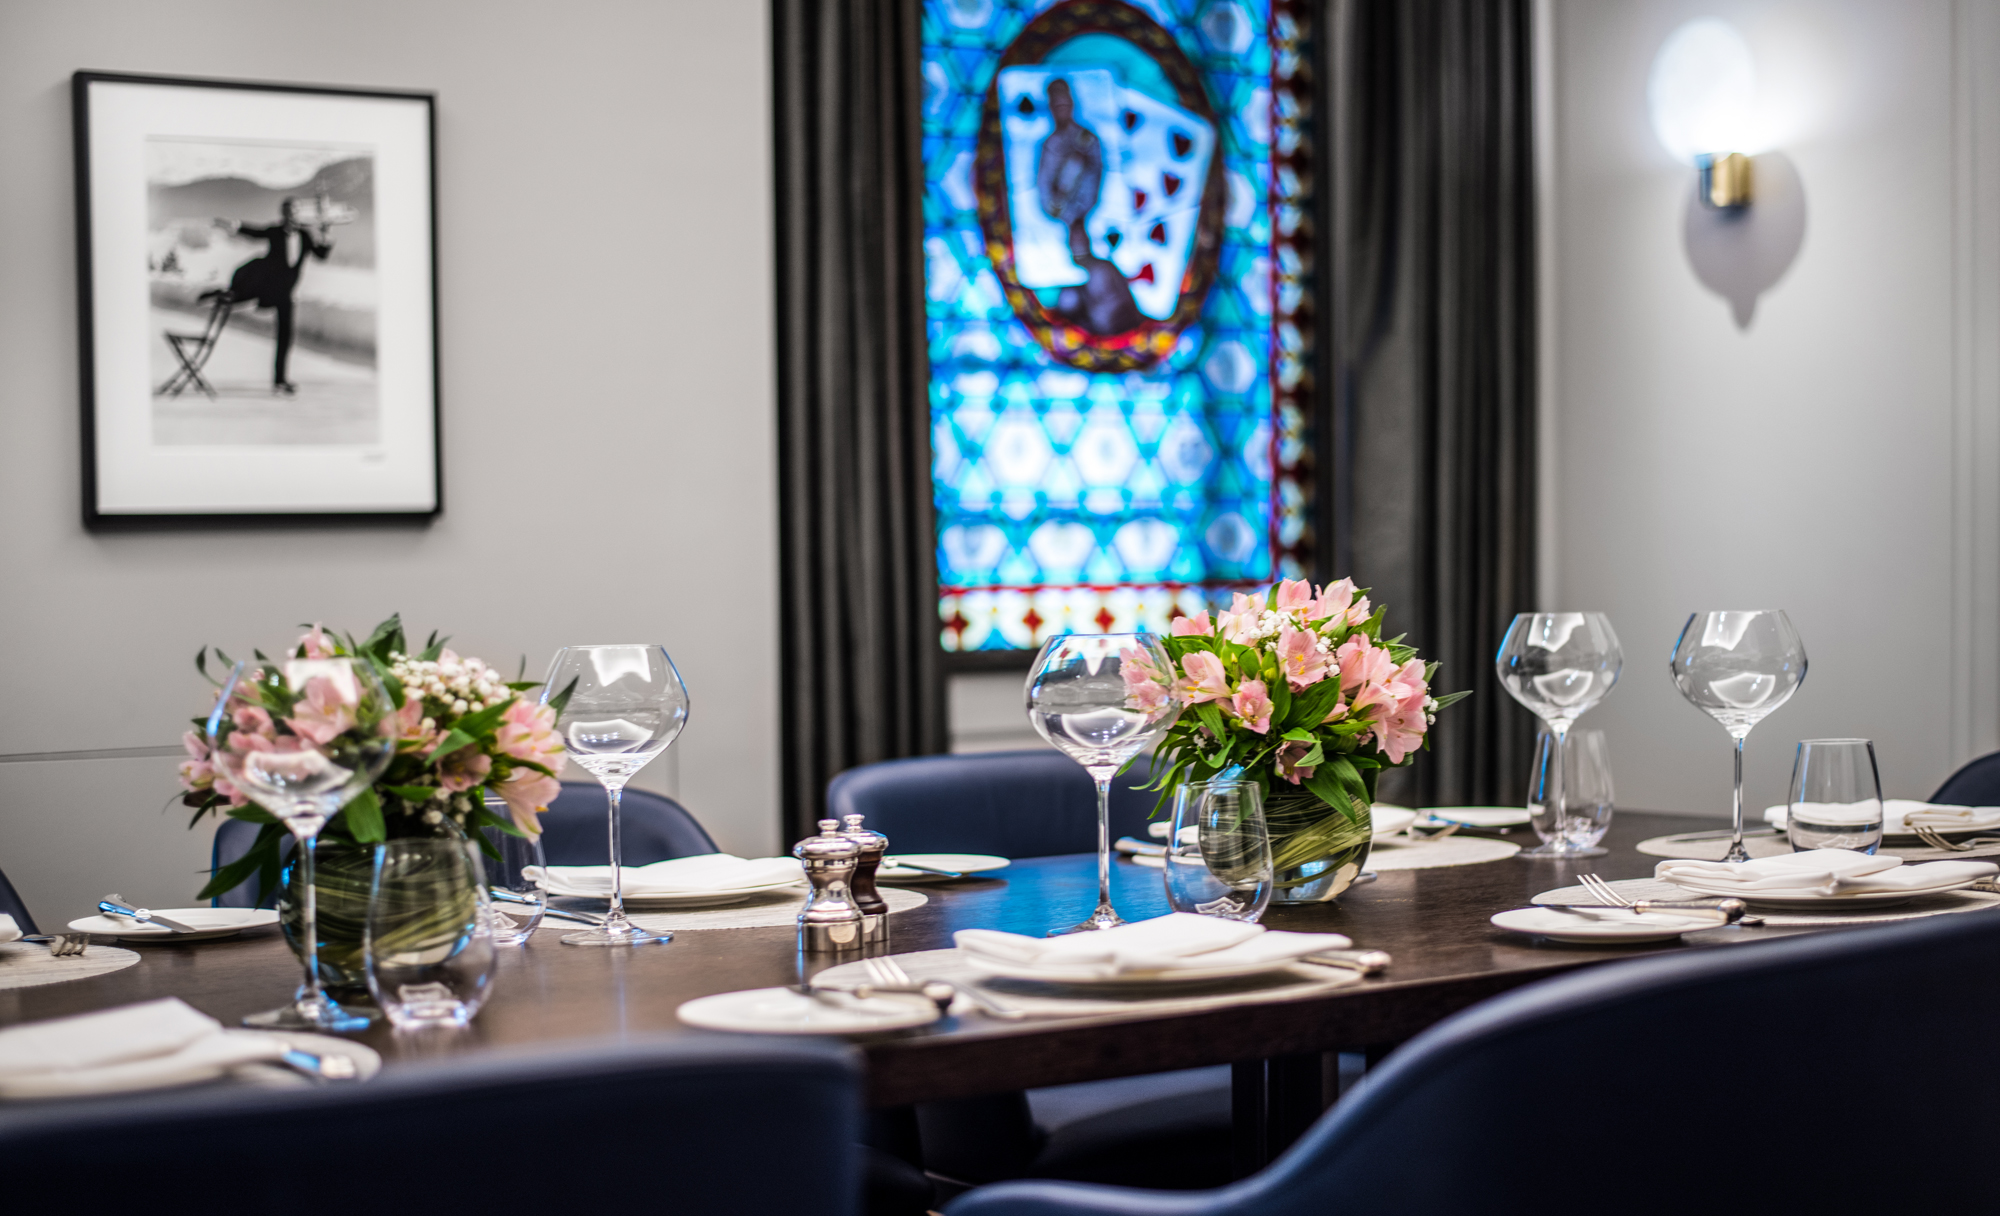 27 Restaurant and Bar Crown Aspinalls mayfair west end london venues corporate hire dining